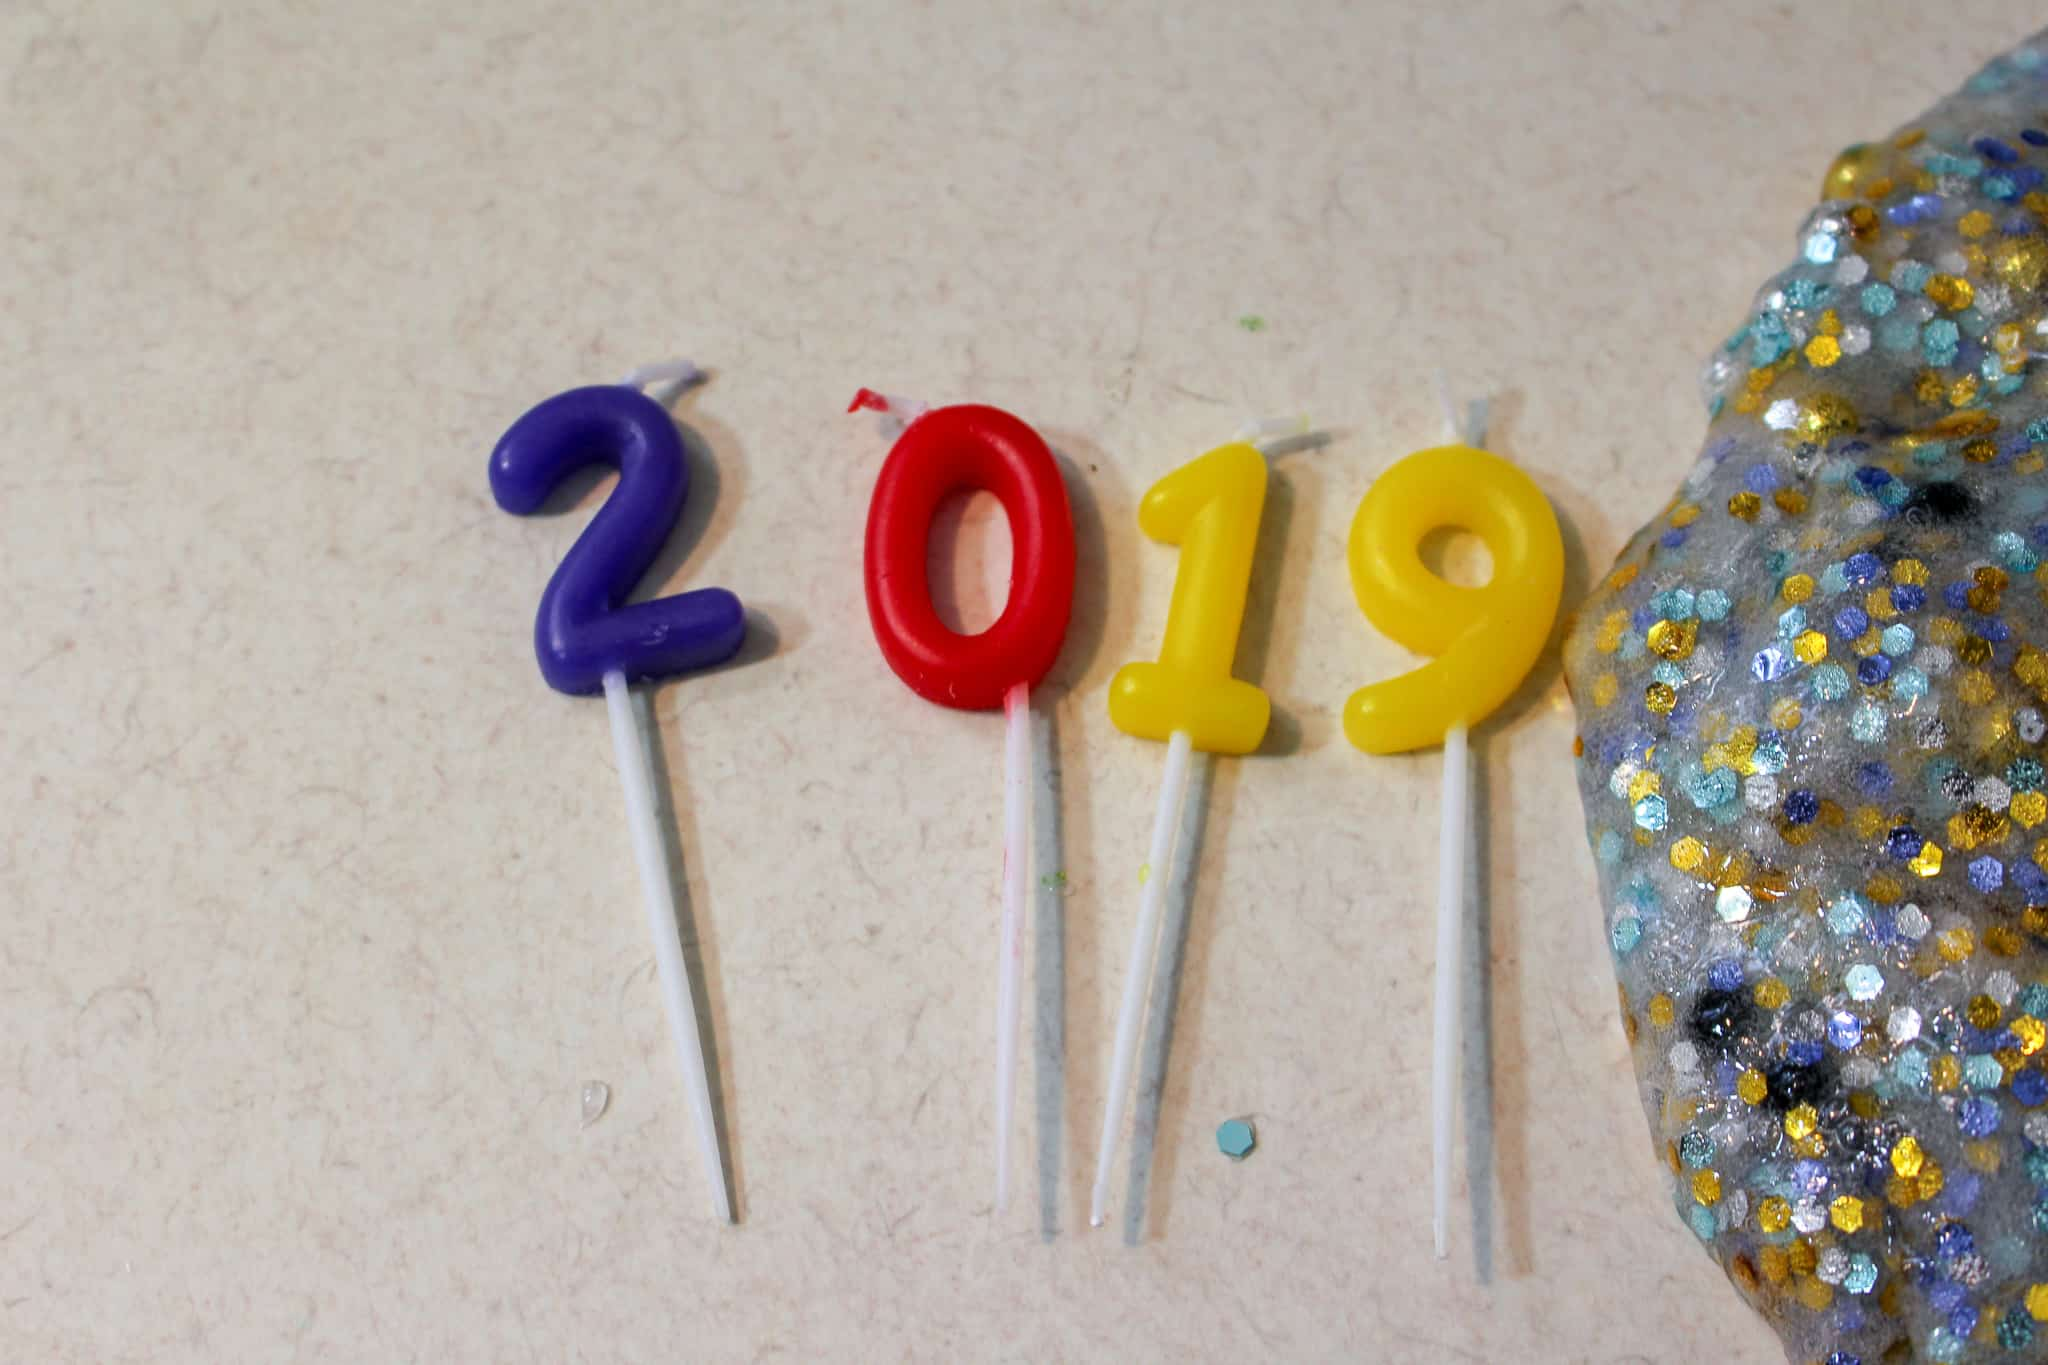 2019 candles